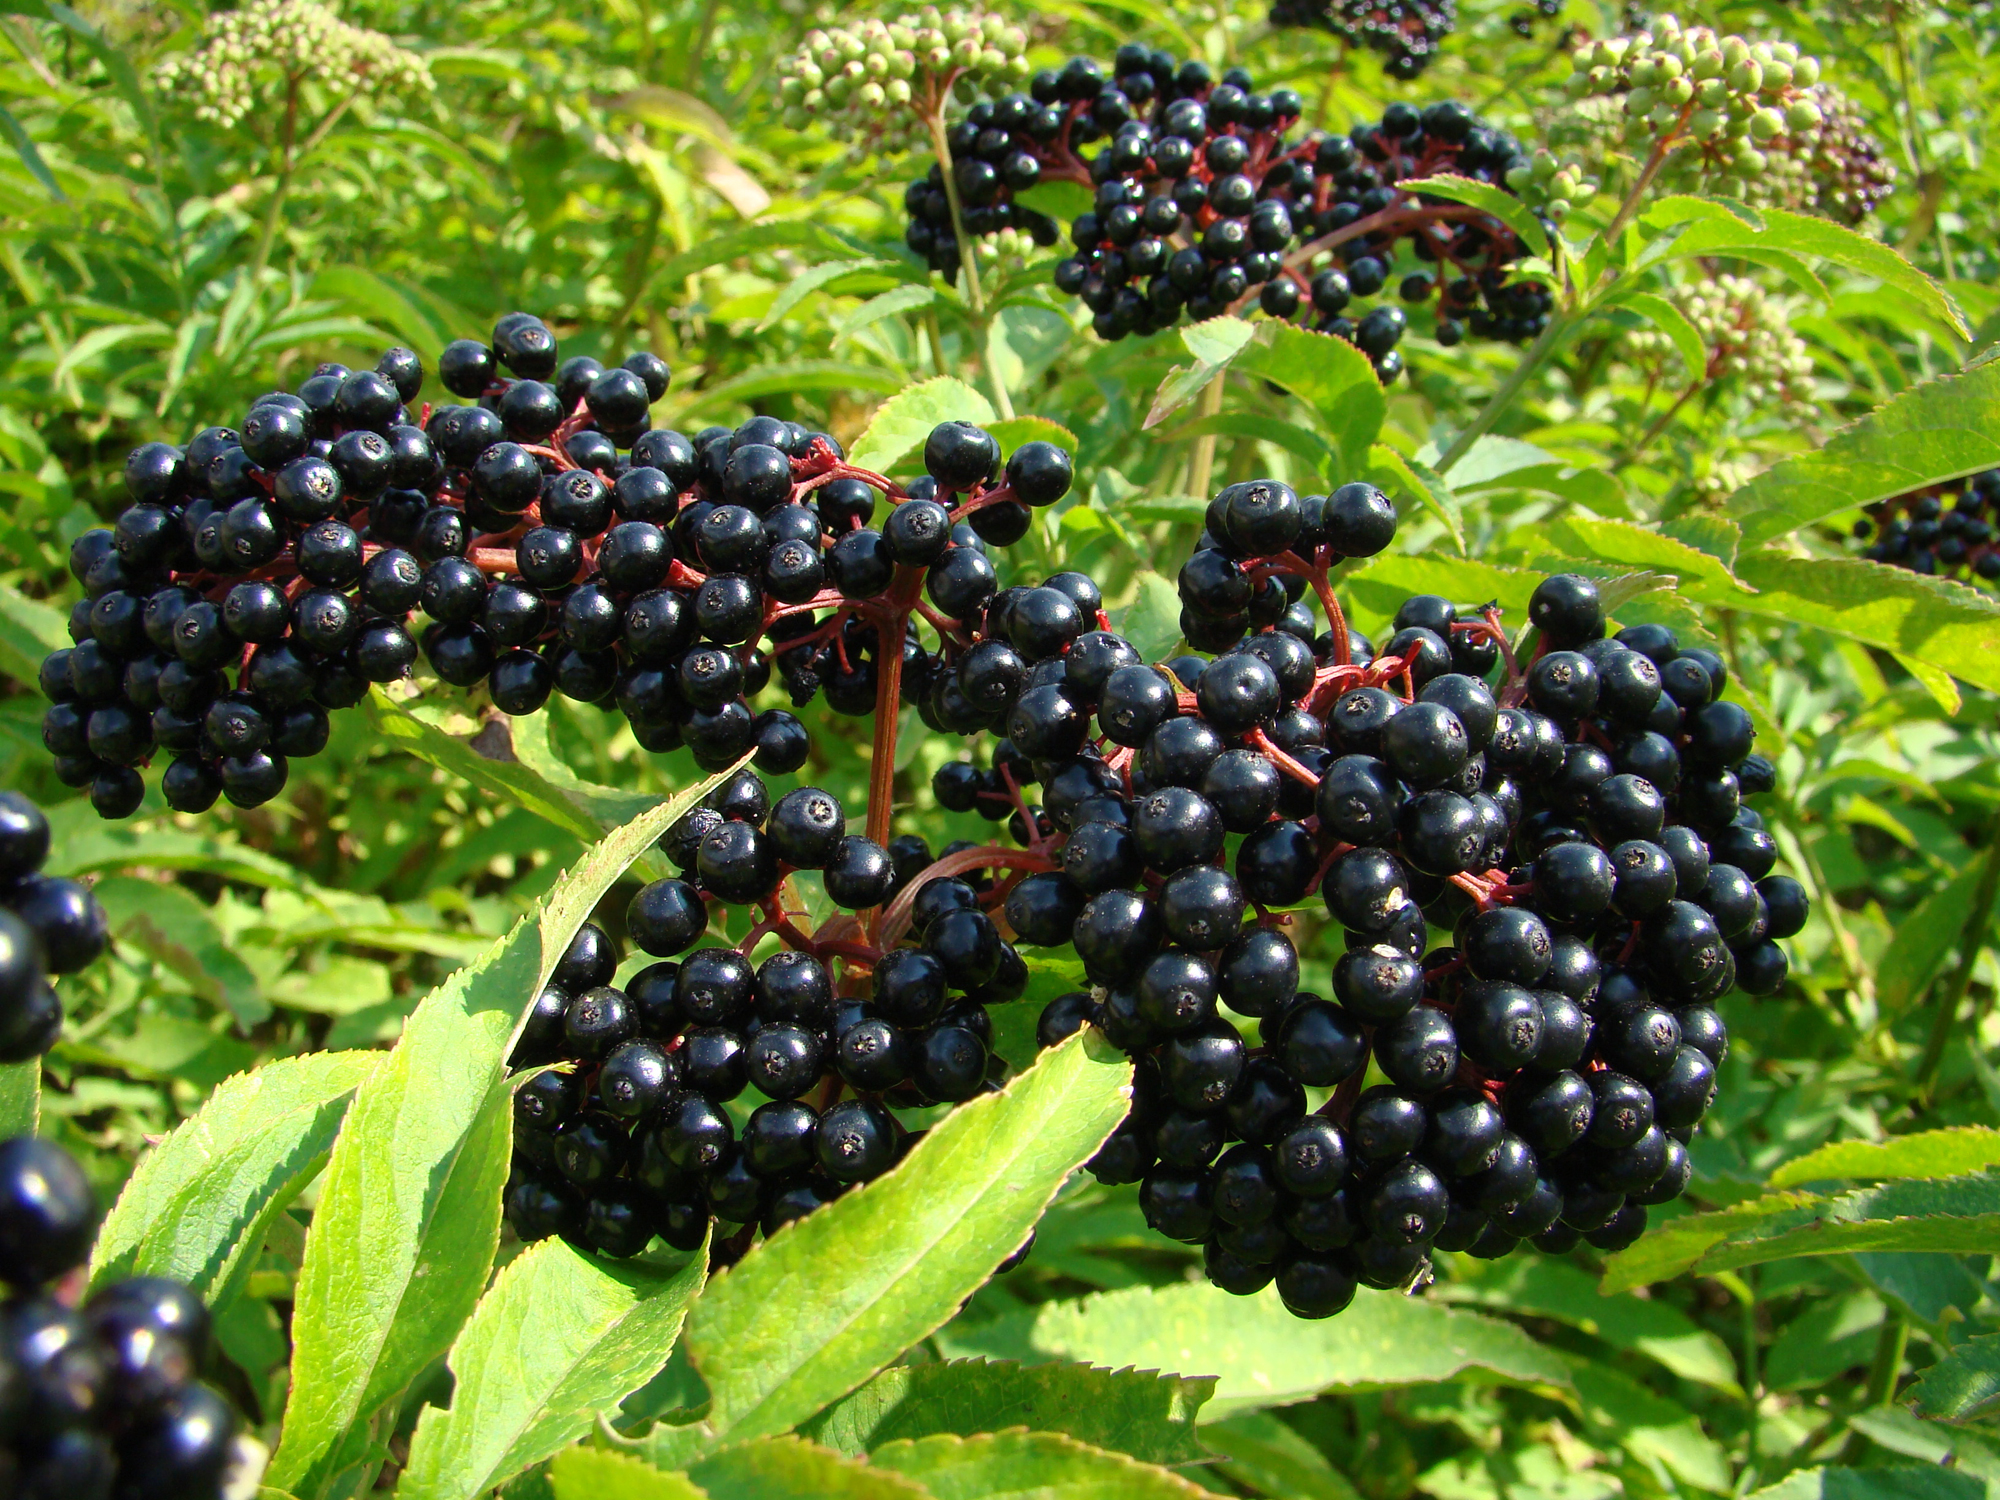 http://upload.wikimedia.org/wikipedia/commons/a/a9/Sambucus-berries.jpg